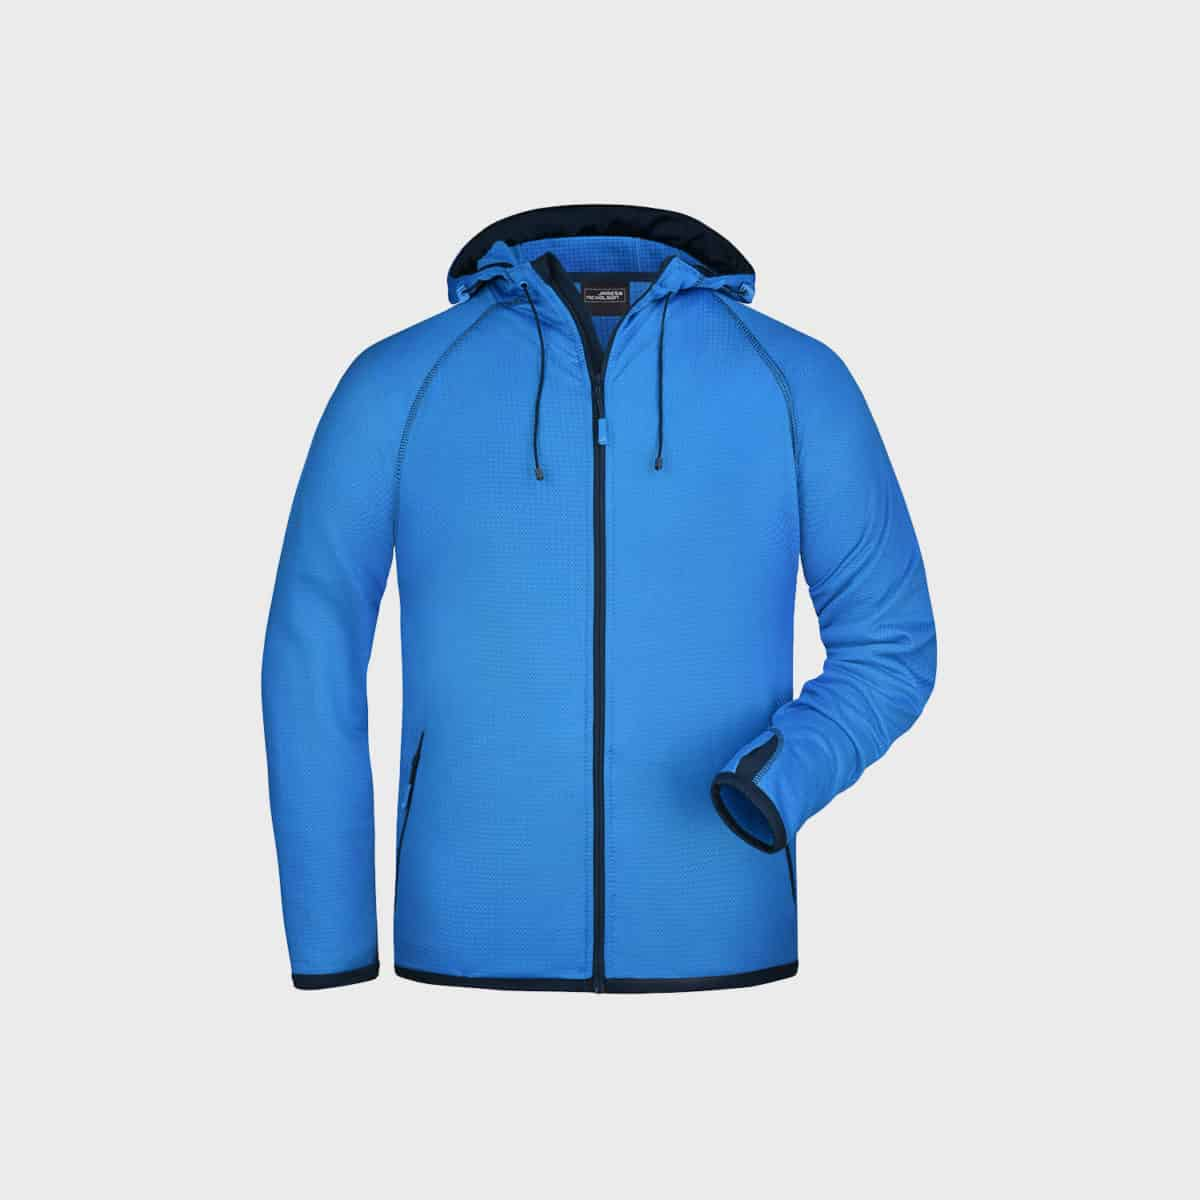 hooded-fleece-jacket-herren-aqua-navy-kaufen-besticken_stickmanufaktur